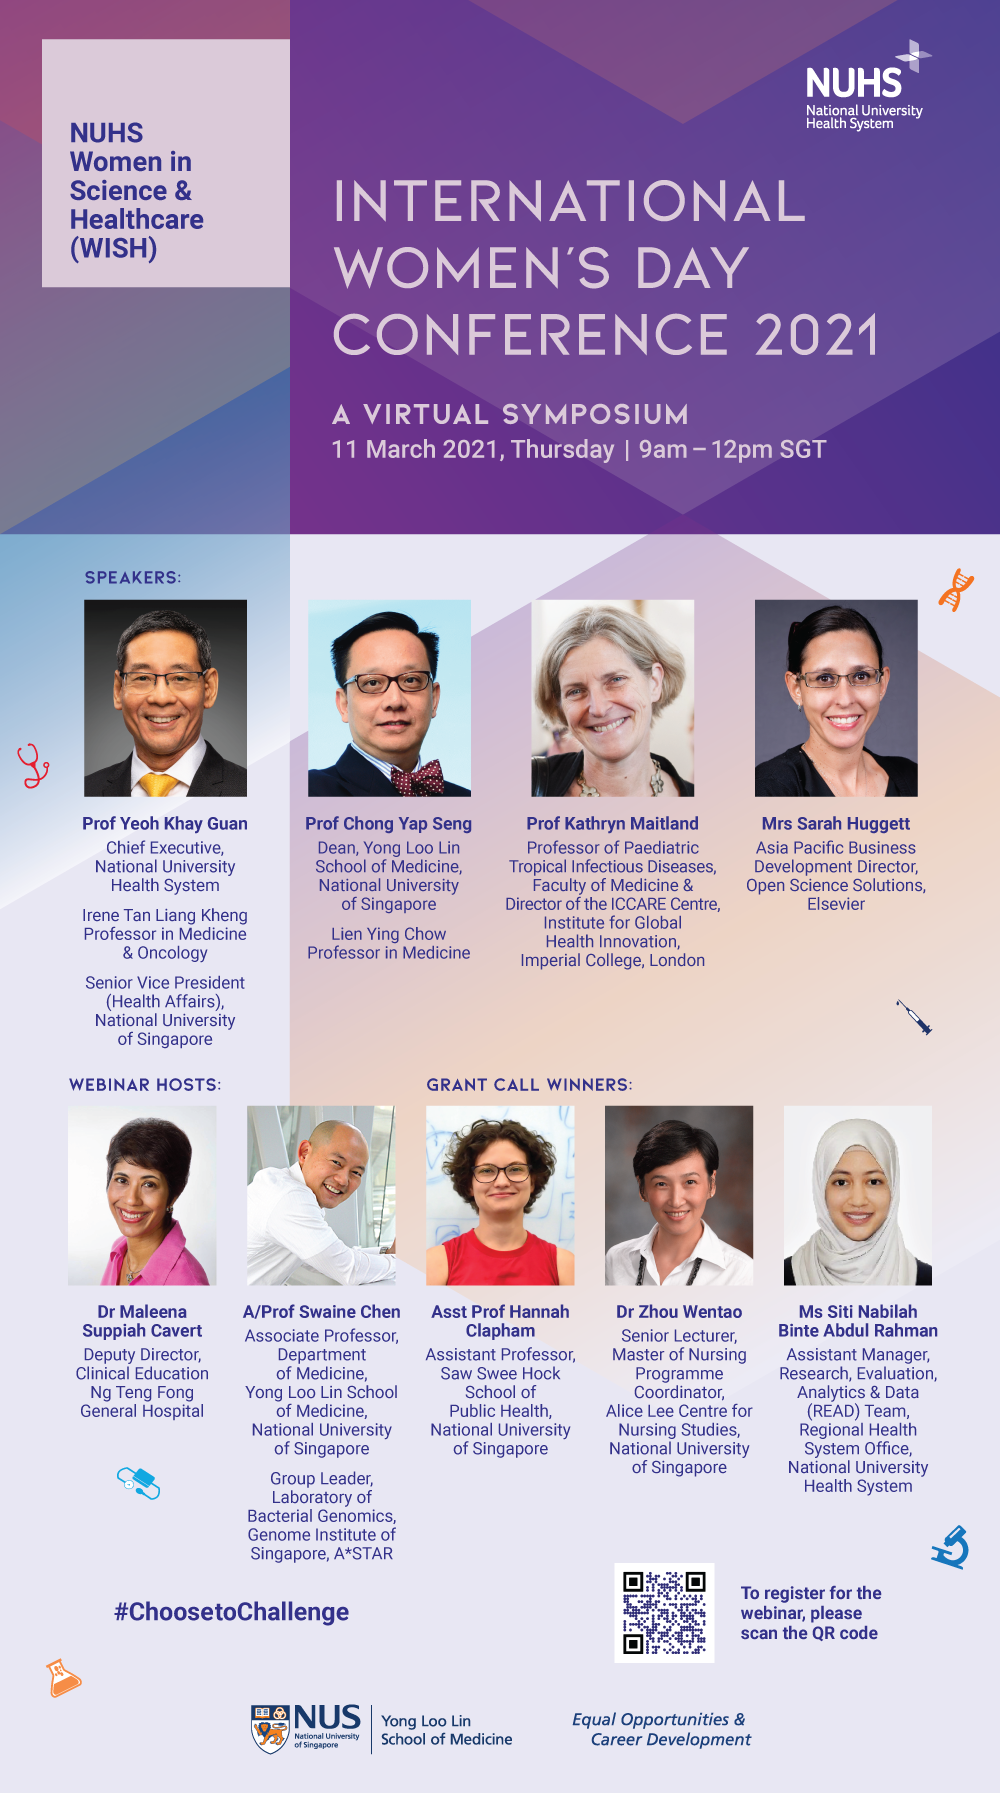 WISH & EOCD International Women's Day Conference 2021 | 11th March 2021 (Thursday), 9am-12pm